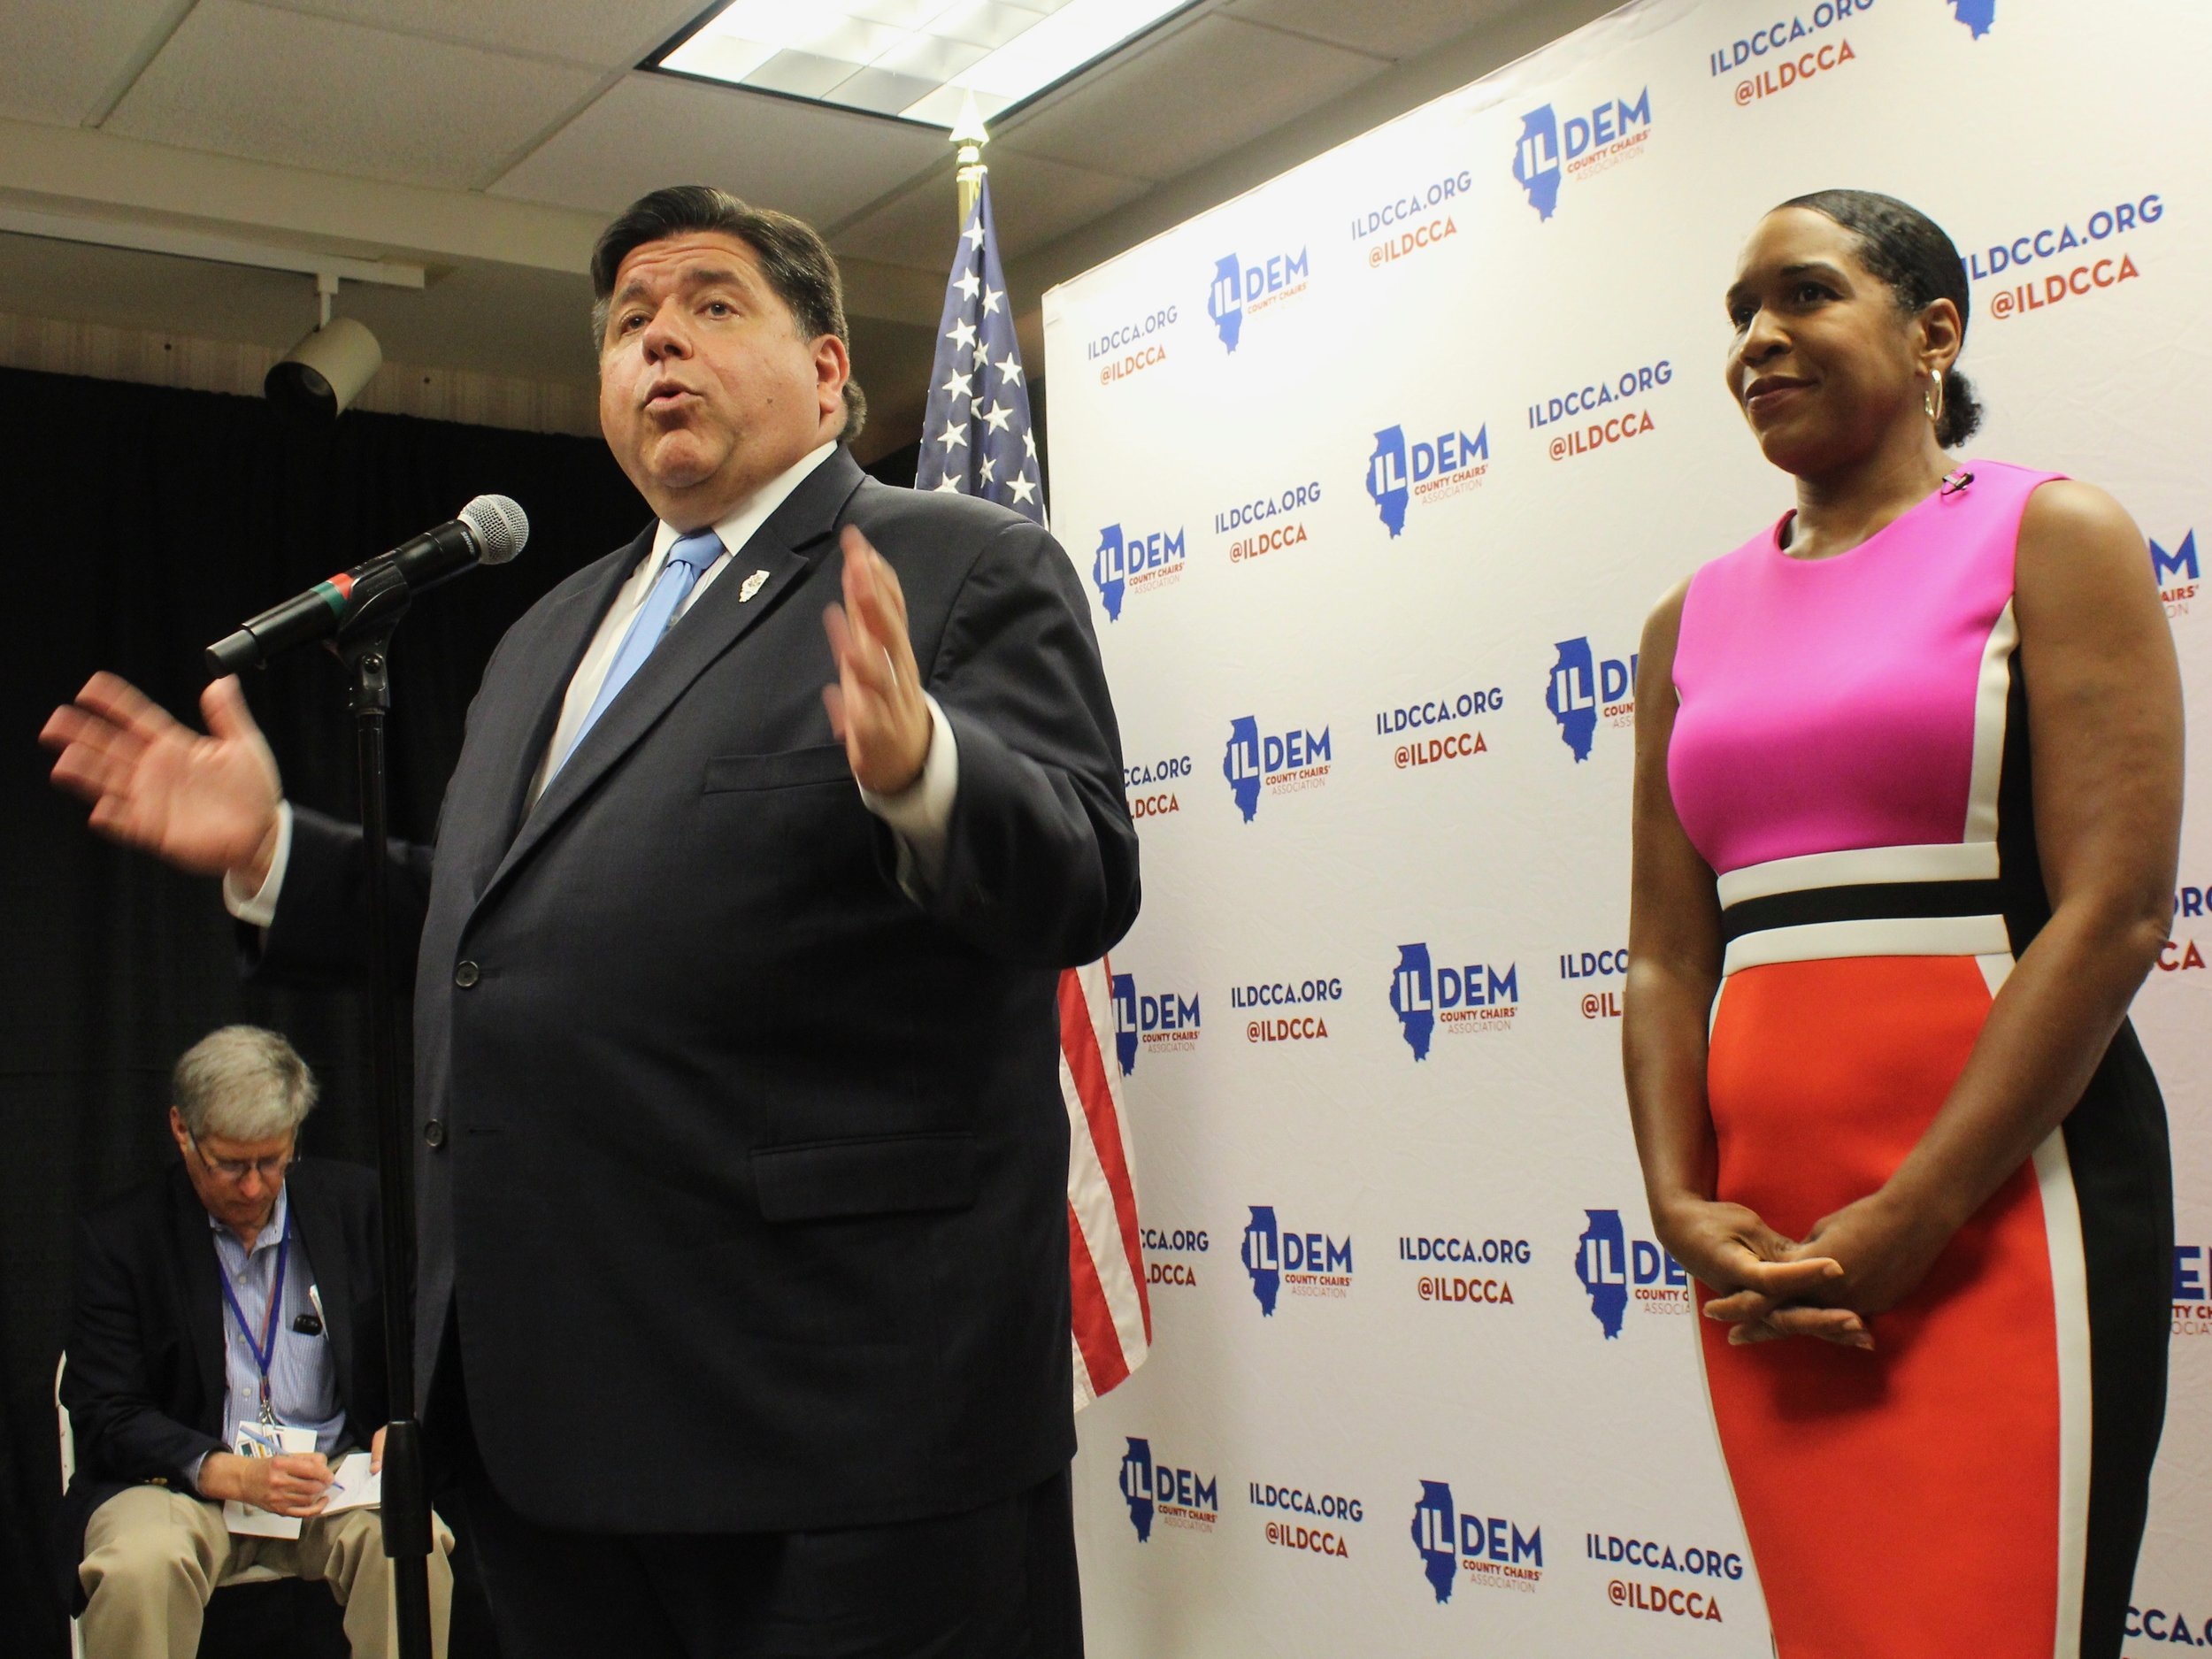 Gov. Pritzker and Lt. Gov. Stratton have made sure the legalization law lives up to sponsors' goals on so-called equity issues. (One Illinois/Ted Cox)